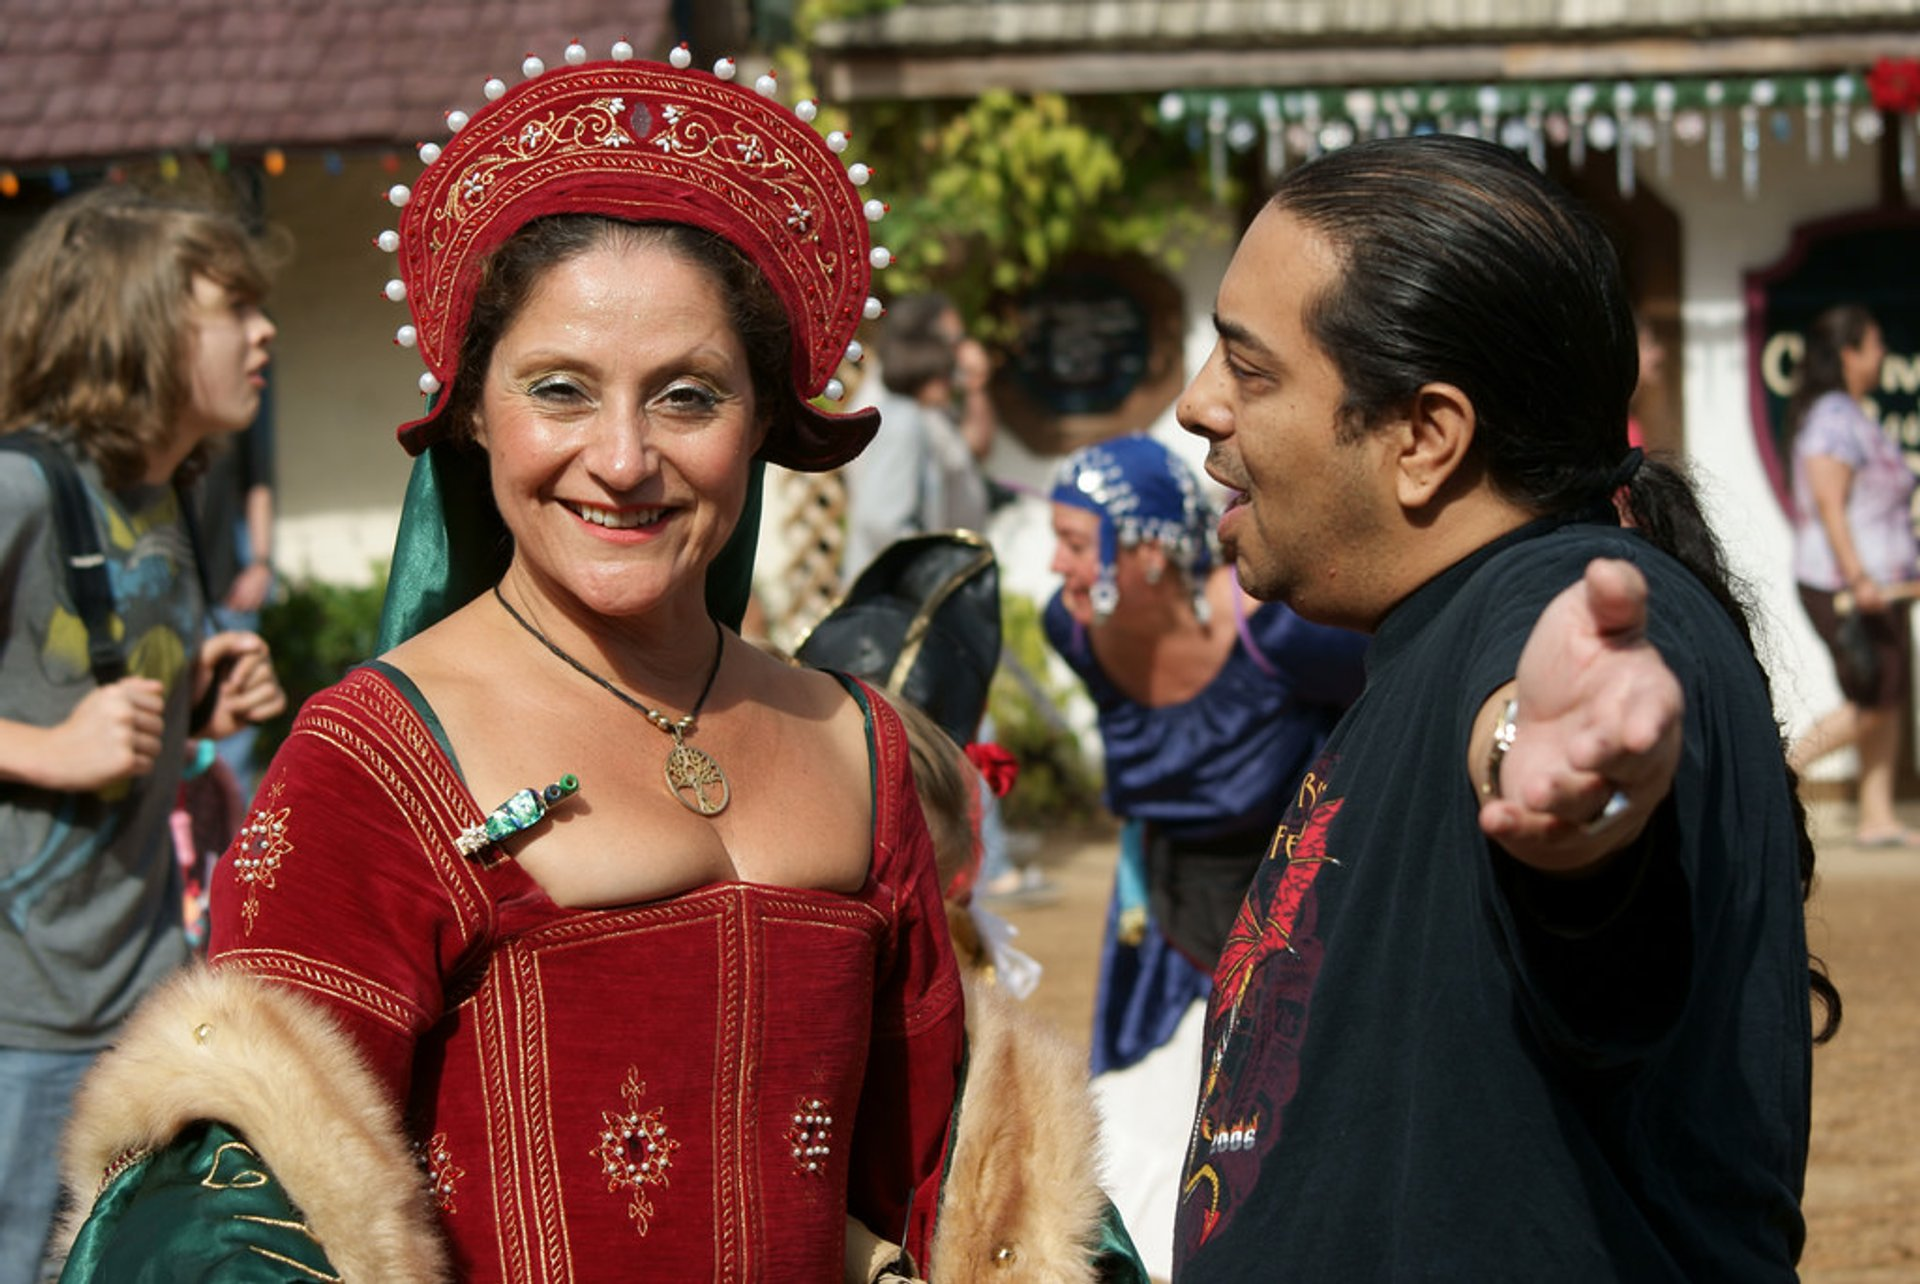 Texas Renaissance Festival in Texas - Best Season 2020